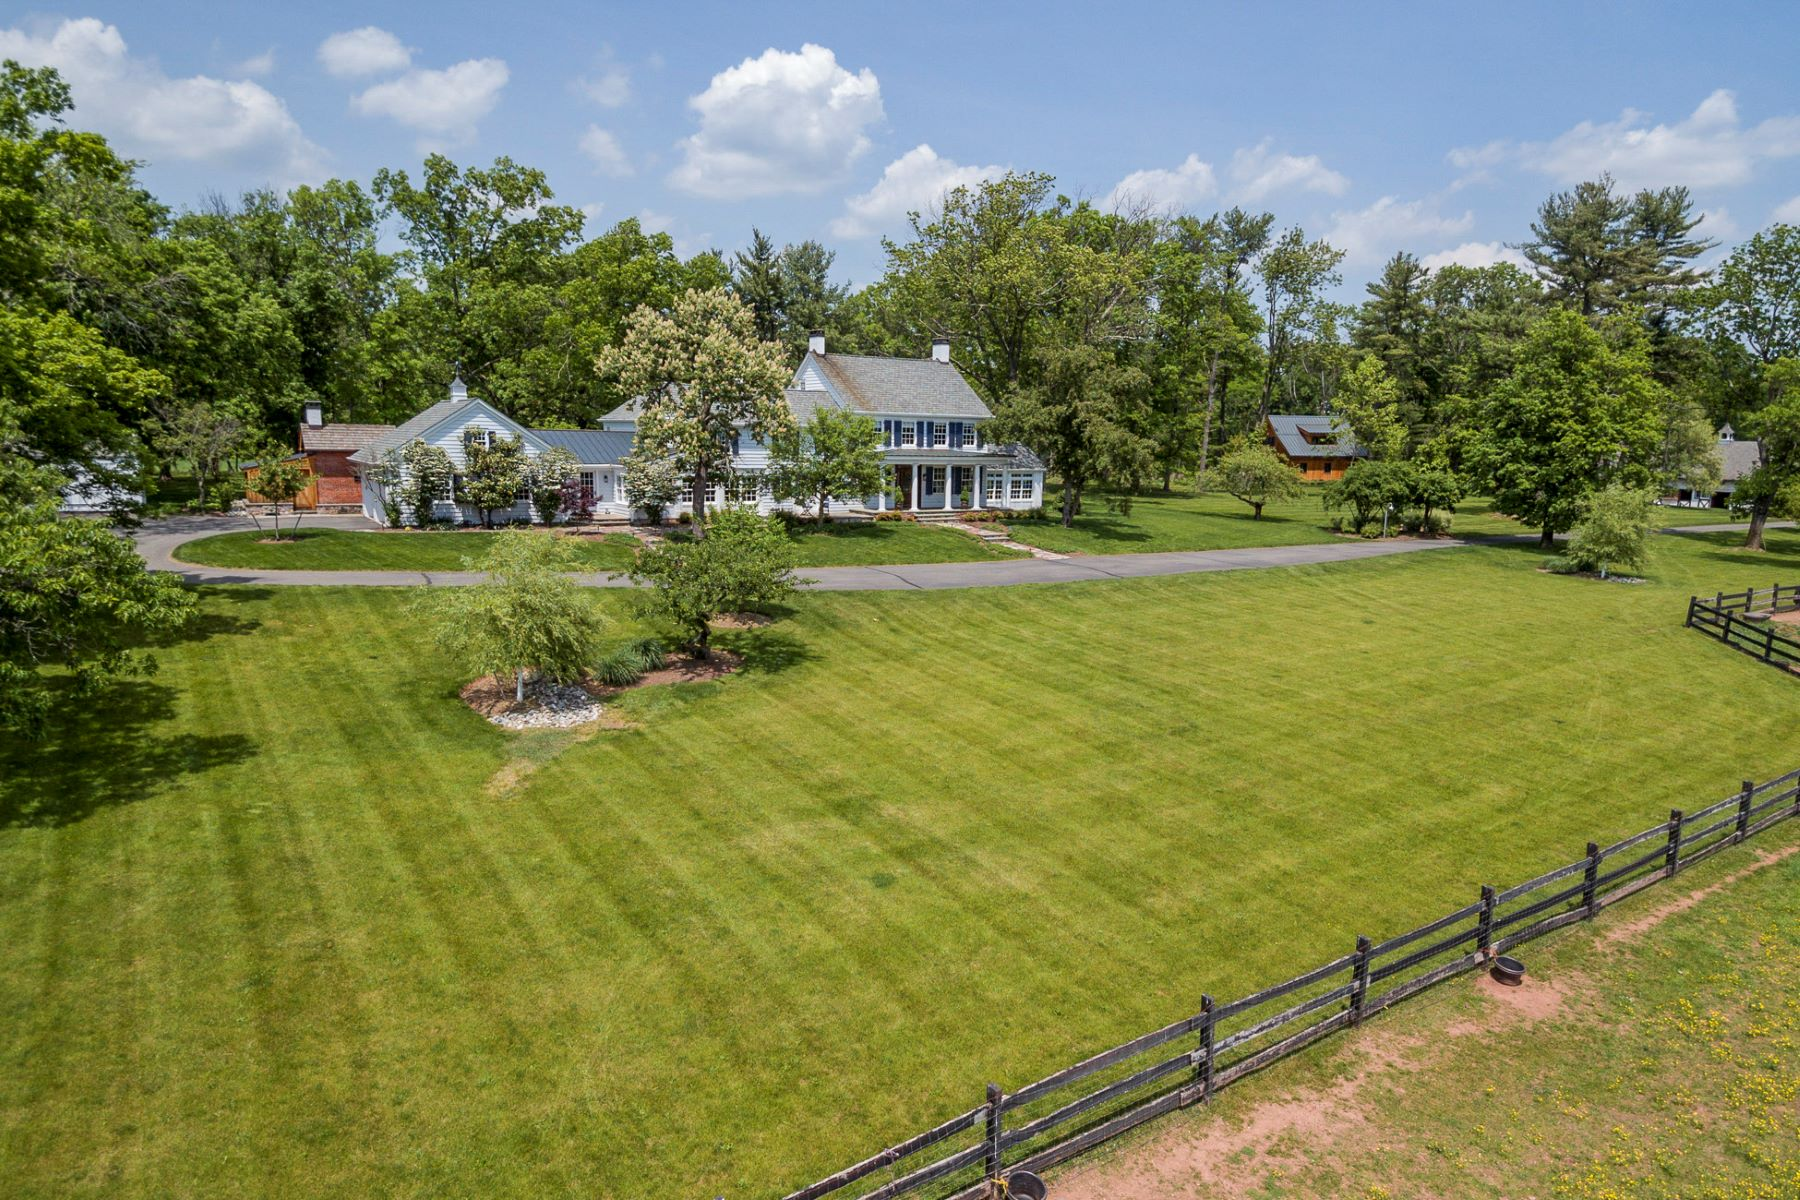 Casa Unifamiliar por un Venta en Historic Farm Reimagined for the Modern Equestrian - Hopewell Township 266 Province Line Road Skillman, Nueva Jersey 08558 Estados UnidosEn/Alrededor: Hopewell Township